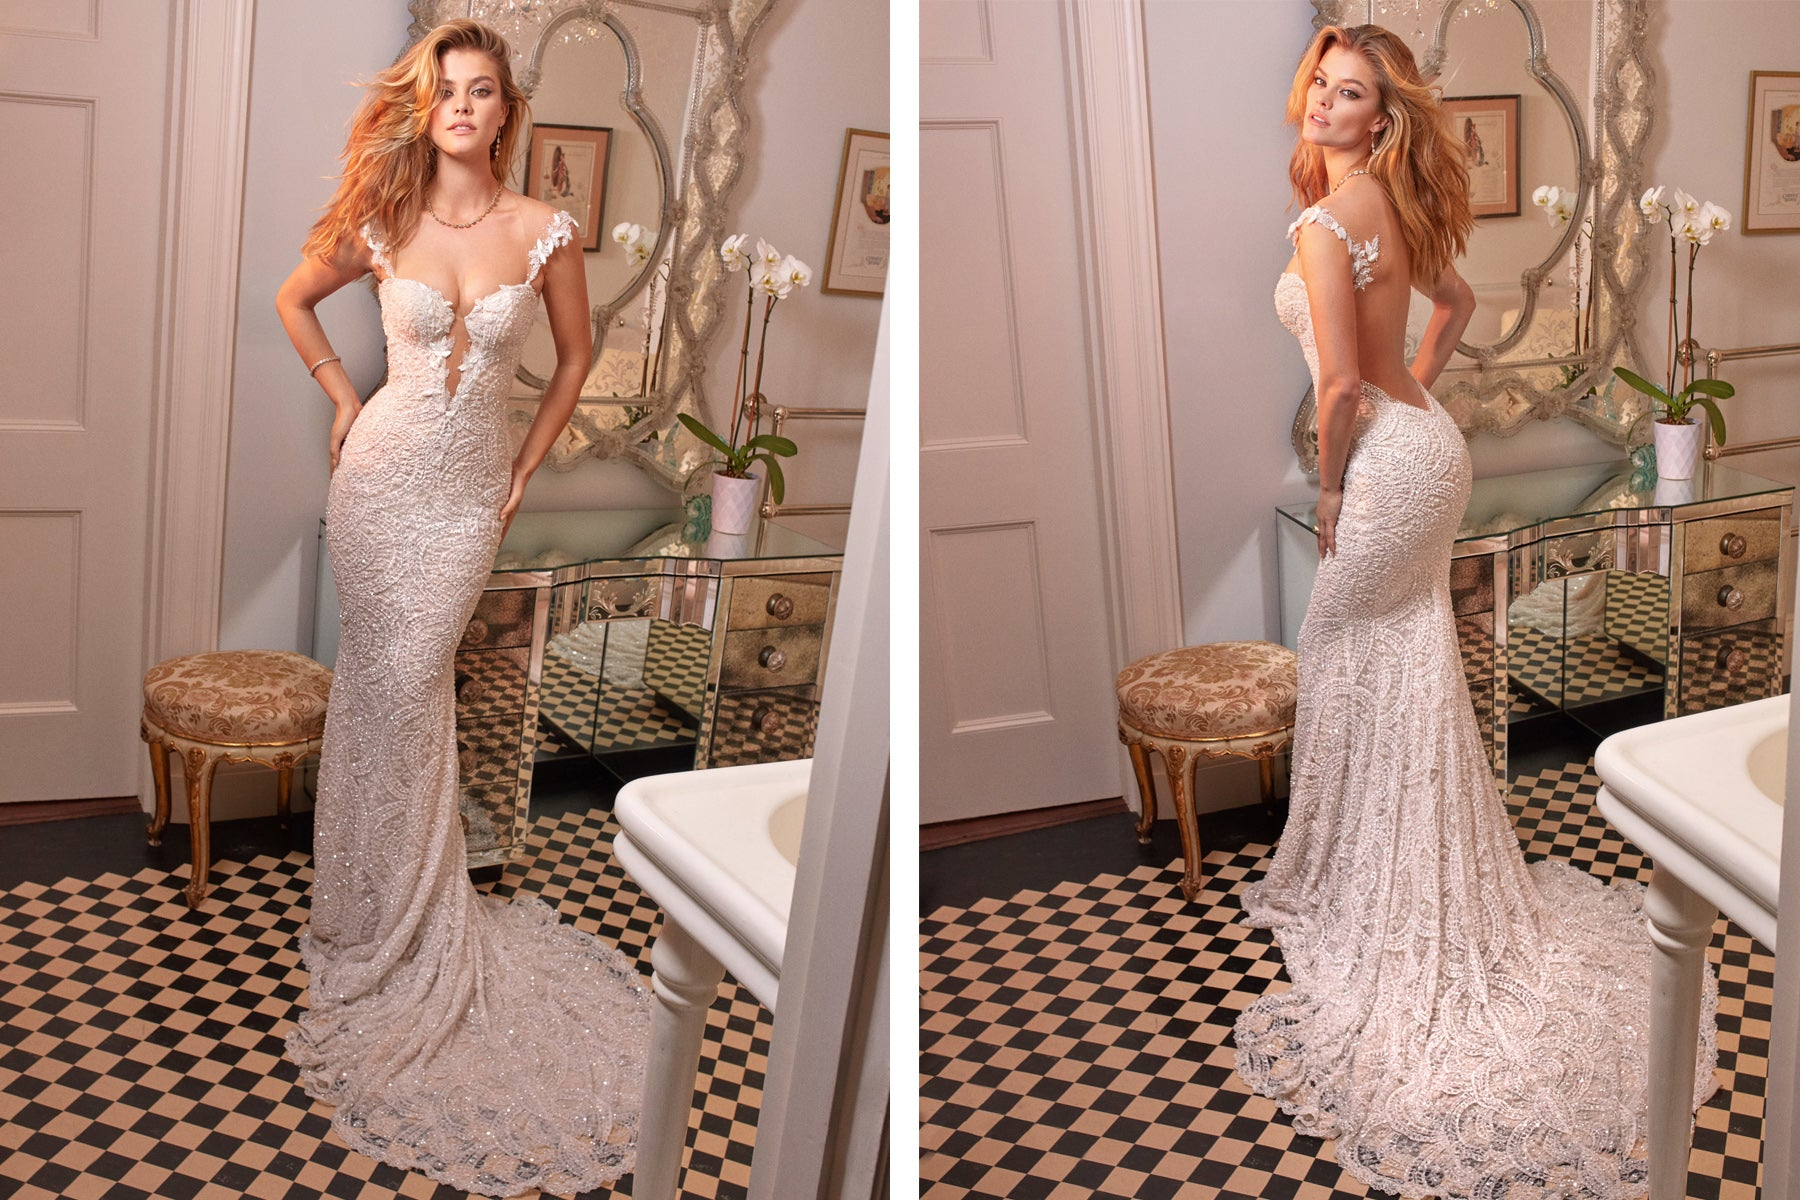 Eternal_Bridal_Wedding_Dress_Galia_Lahav_Haute_Couture_Queen_of_Hearts_Harlow